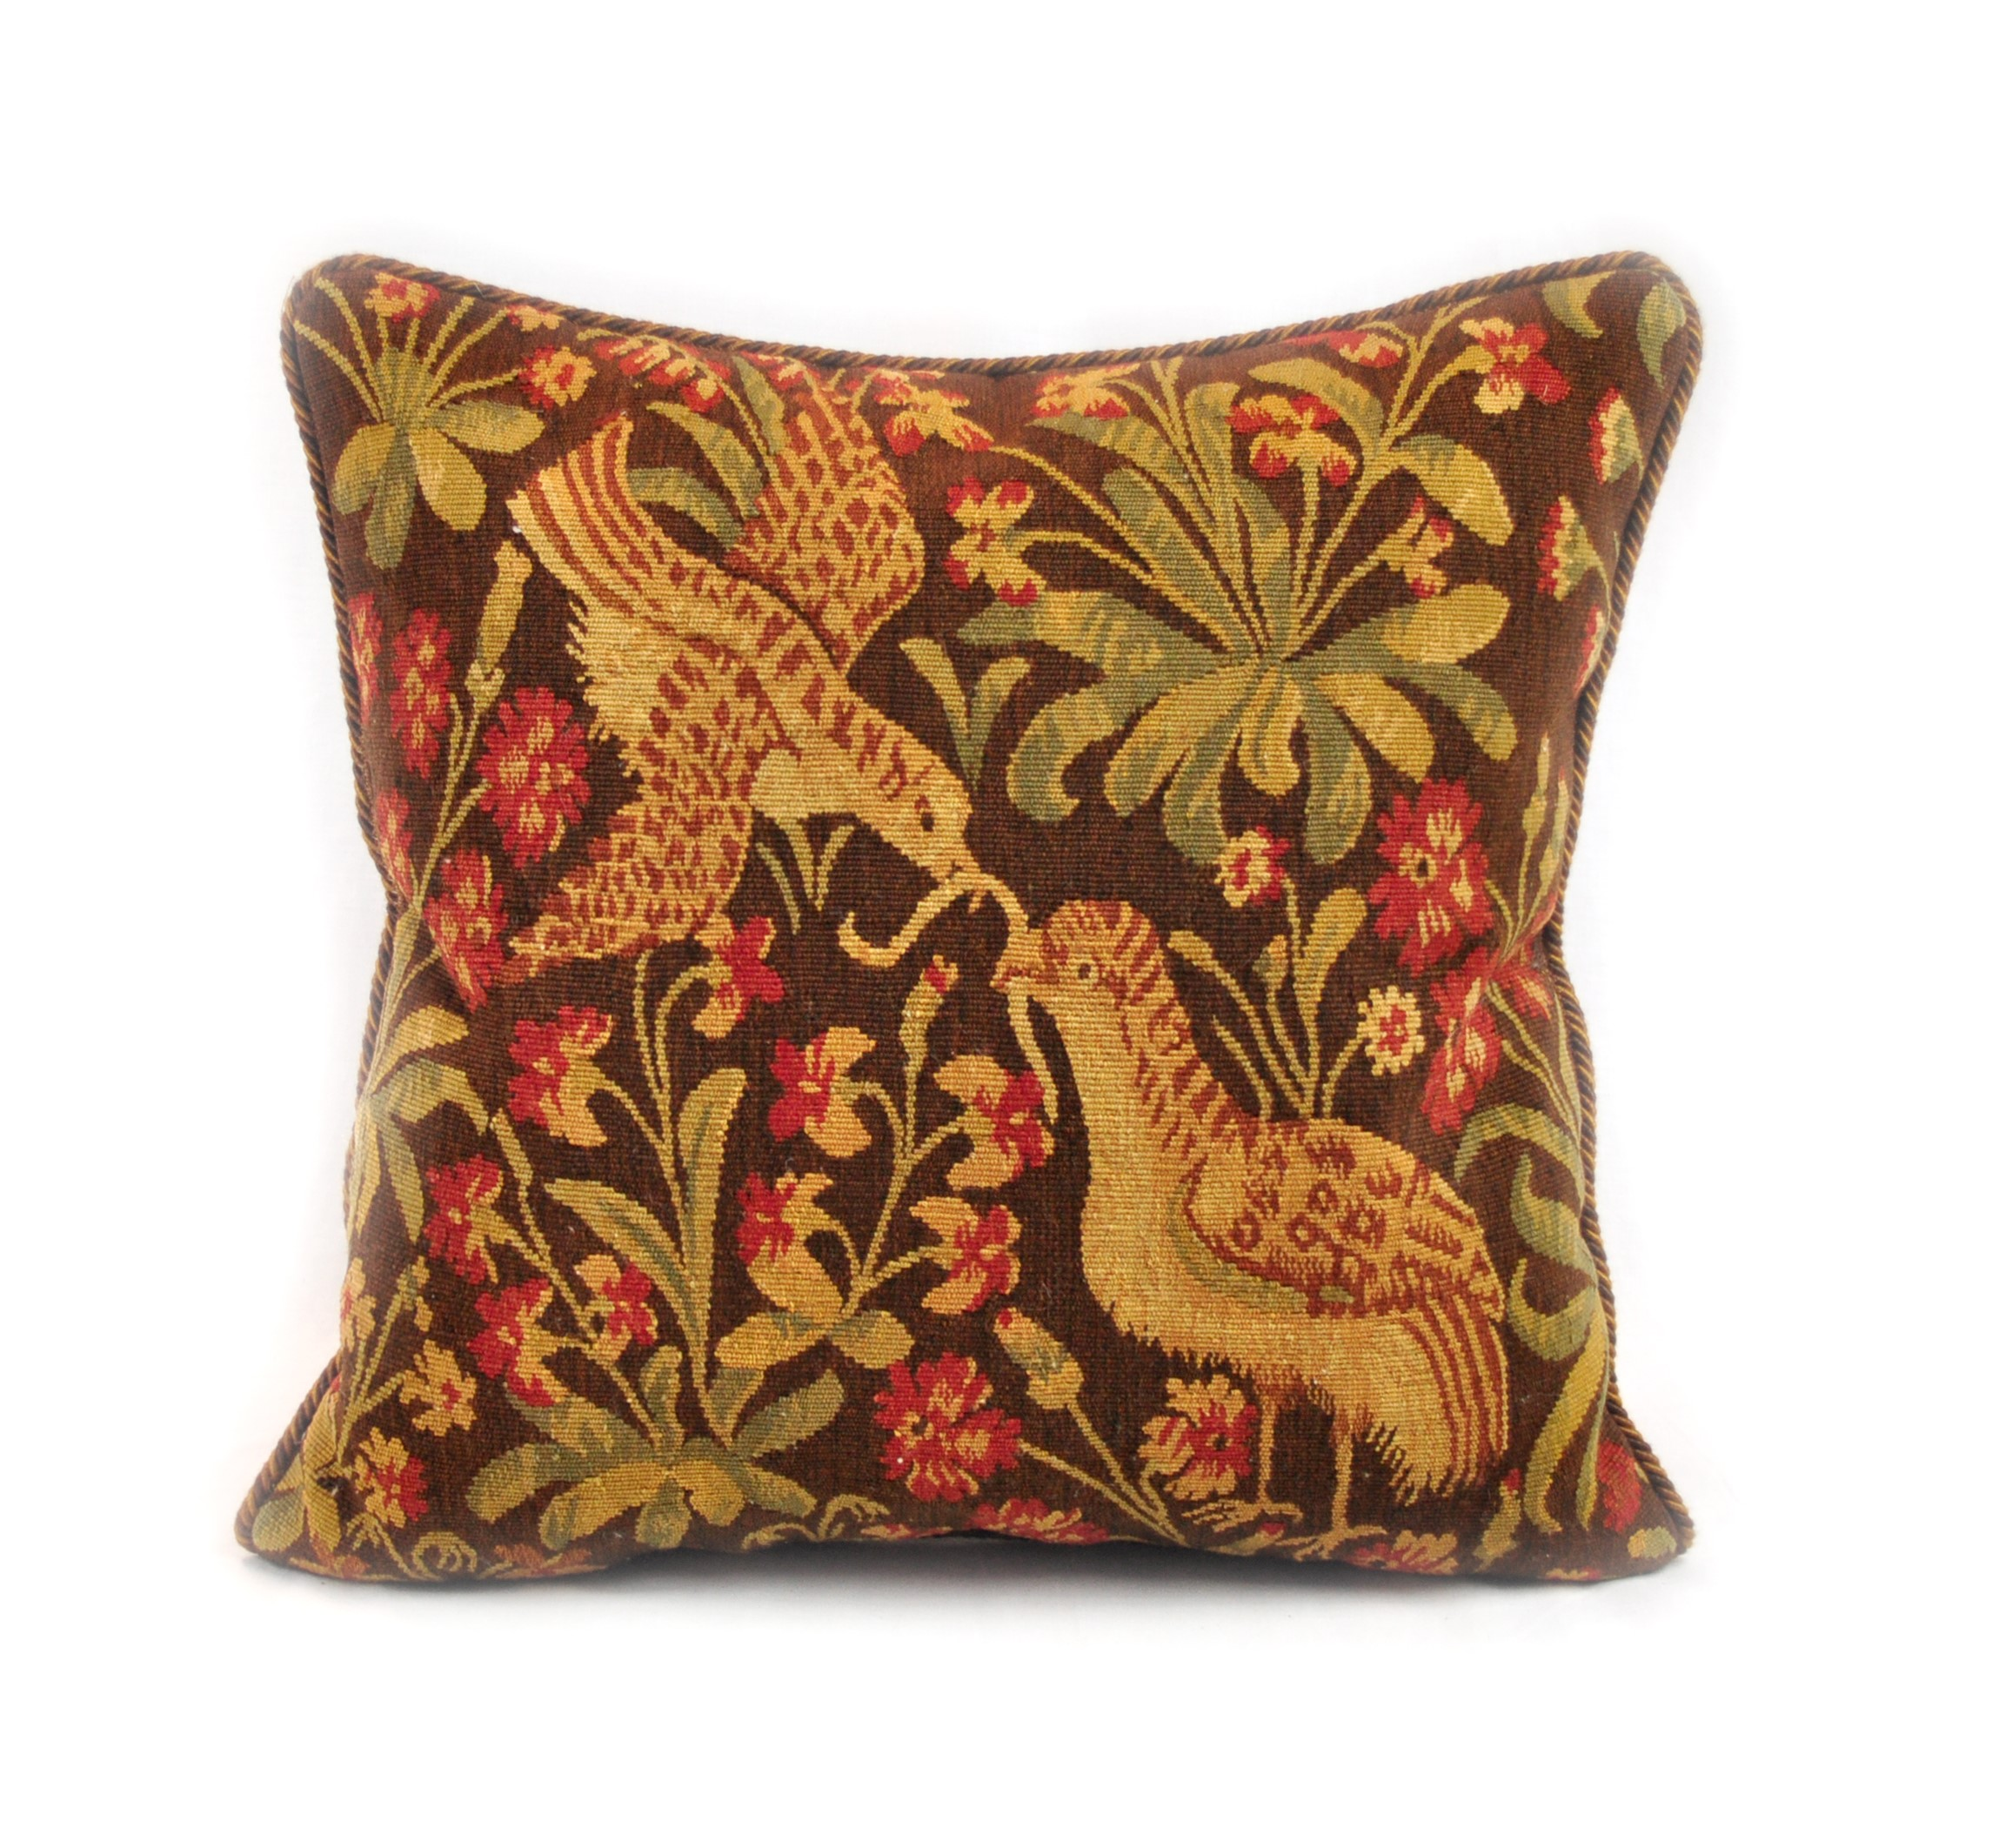 20×20 Antique Reproduction Pair of Birds French Gobelins Tapestry Weave Wool Aubusson Cushion Cover Pillow Case 12980031